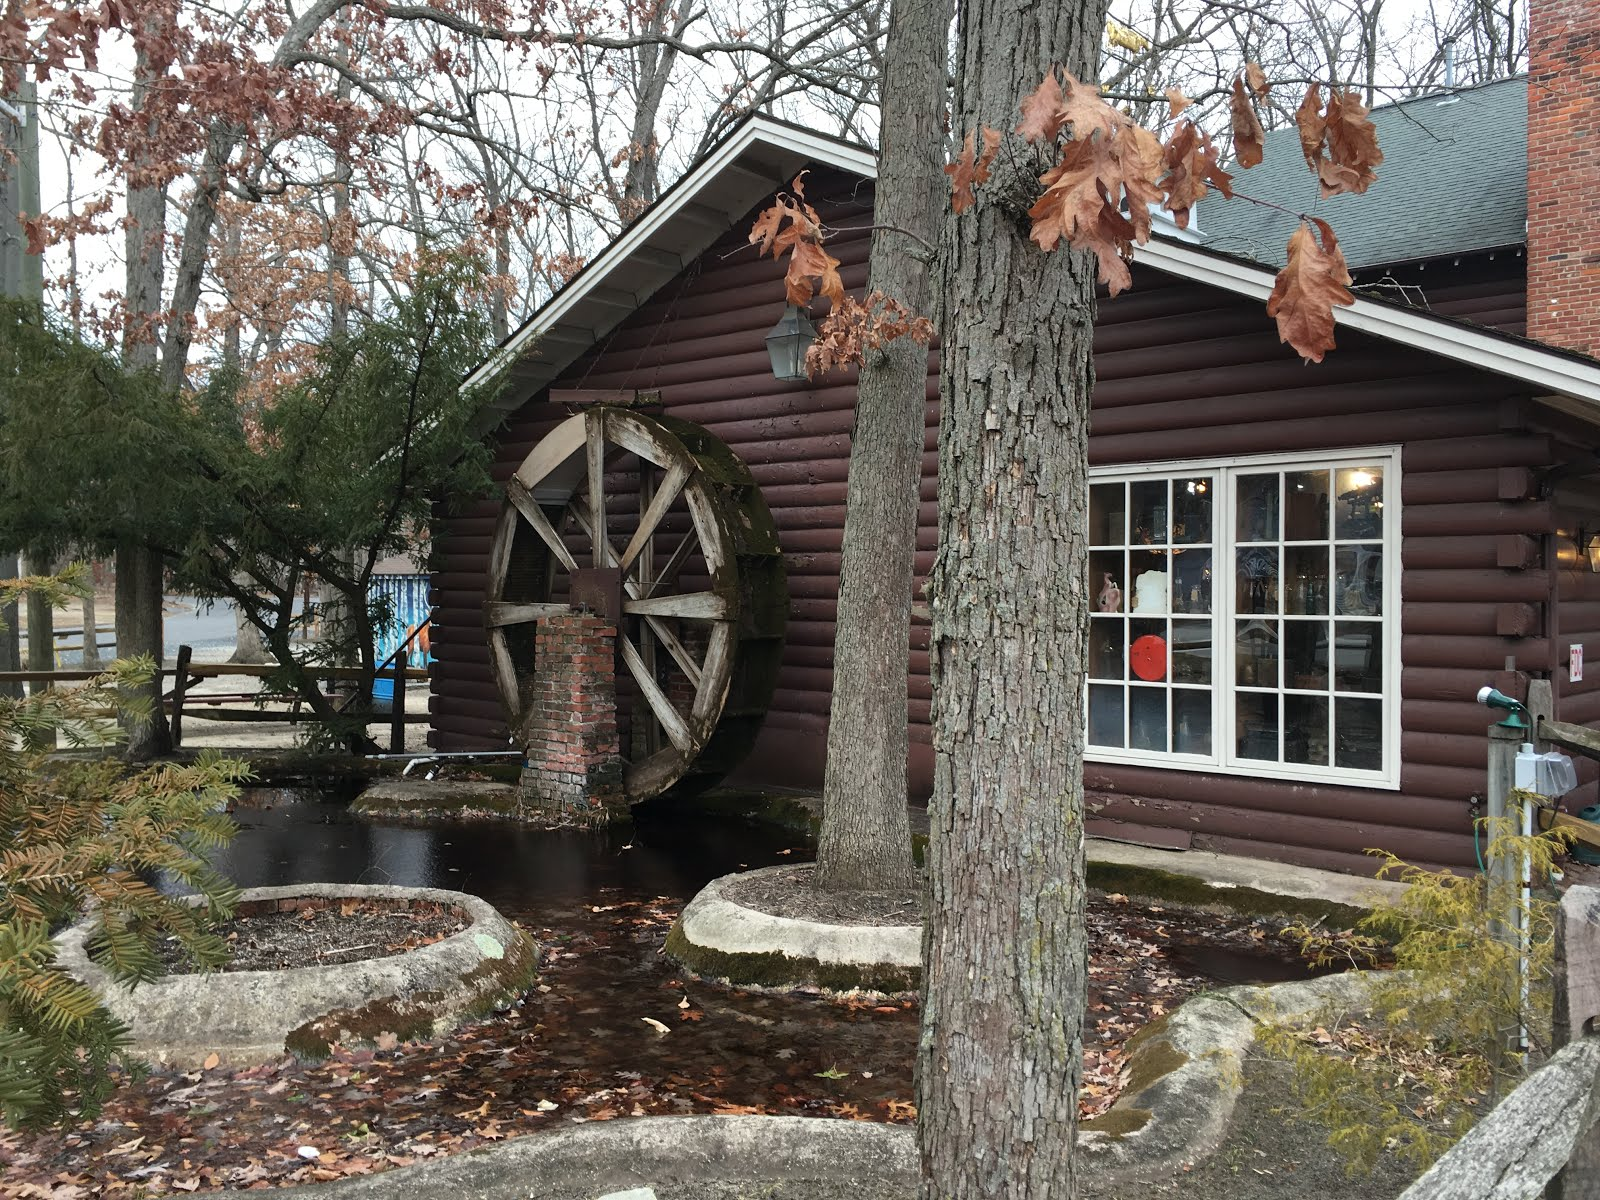 MADE & FOUND SHOP, RANCOCAS